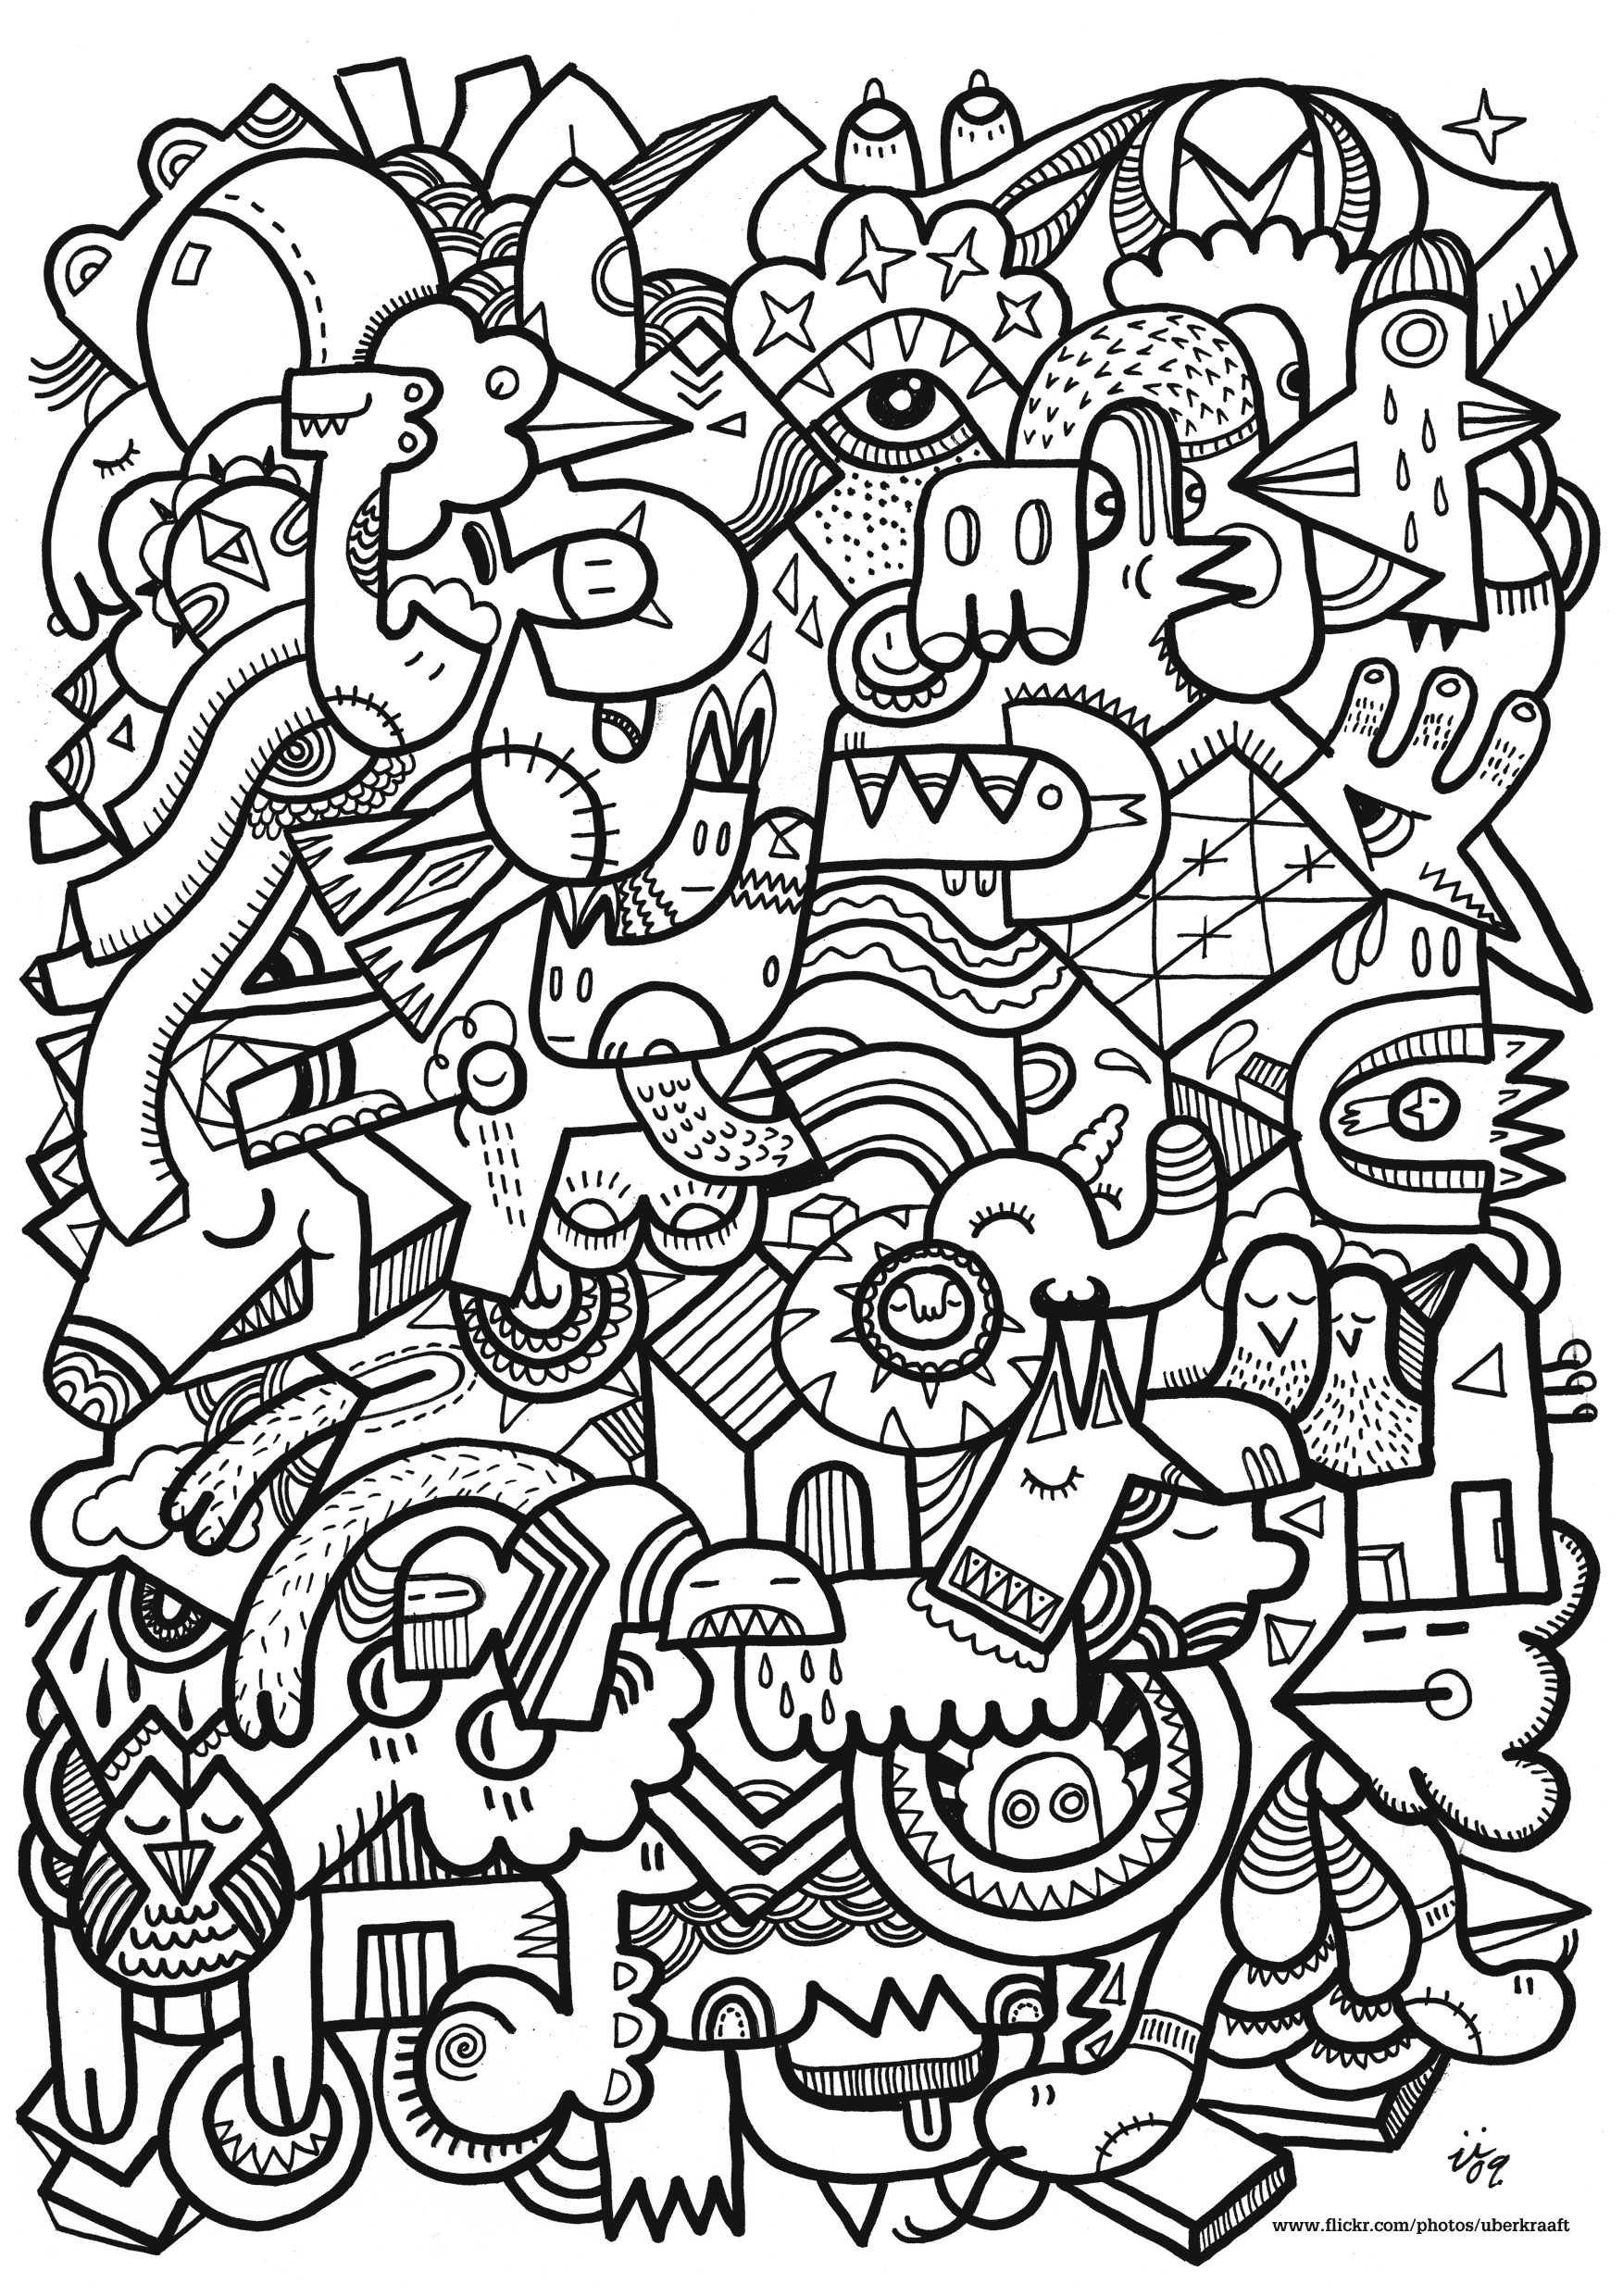 Free Adult coloring page to print and color, for kids